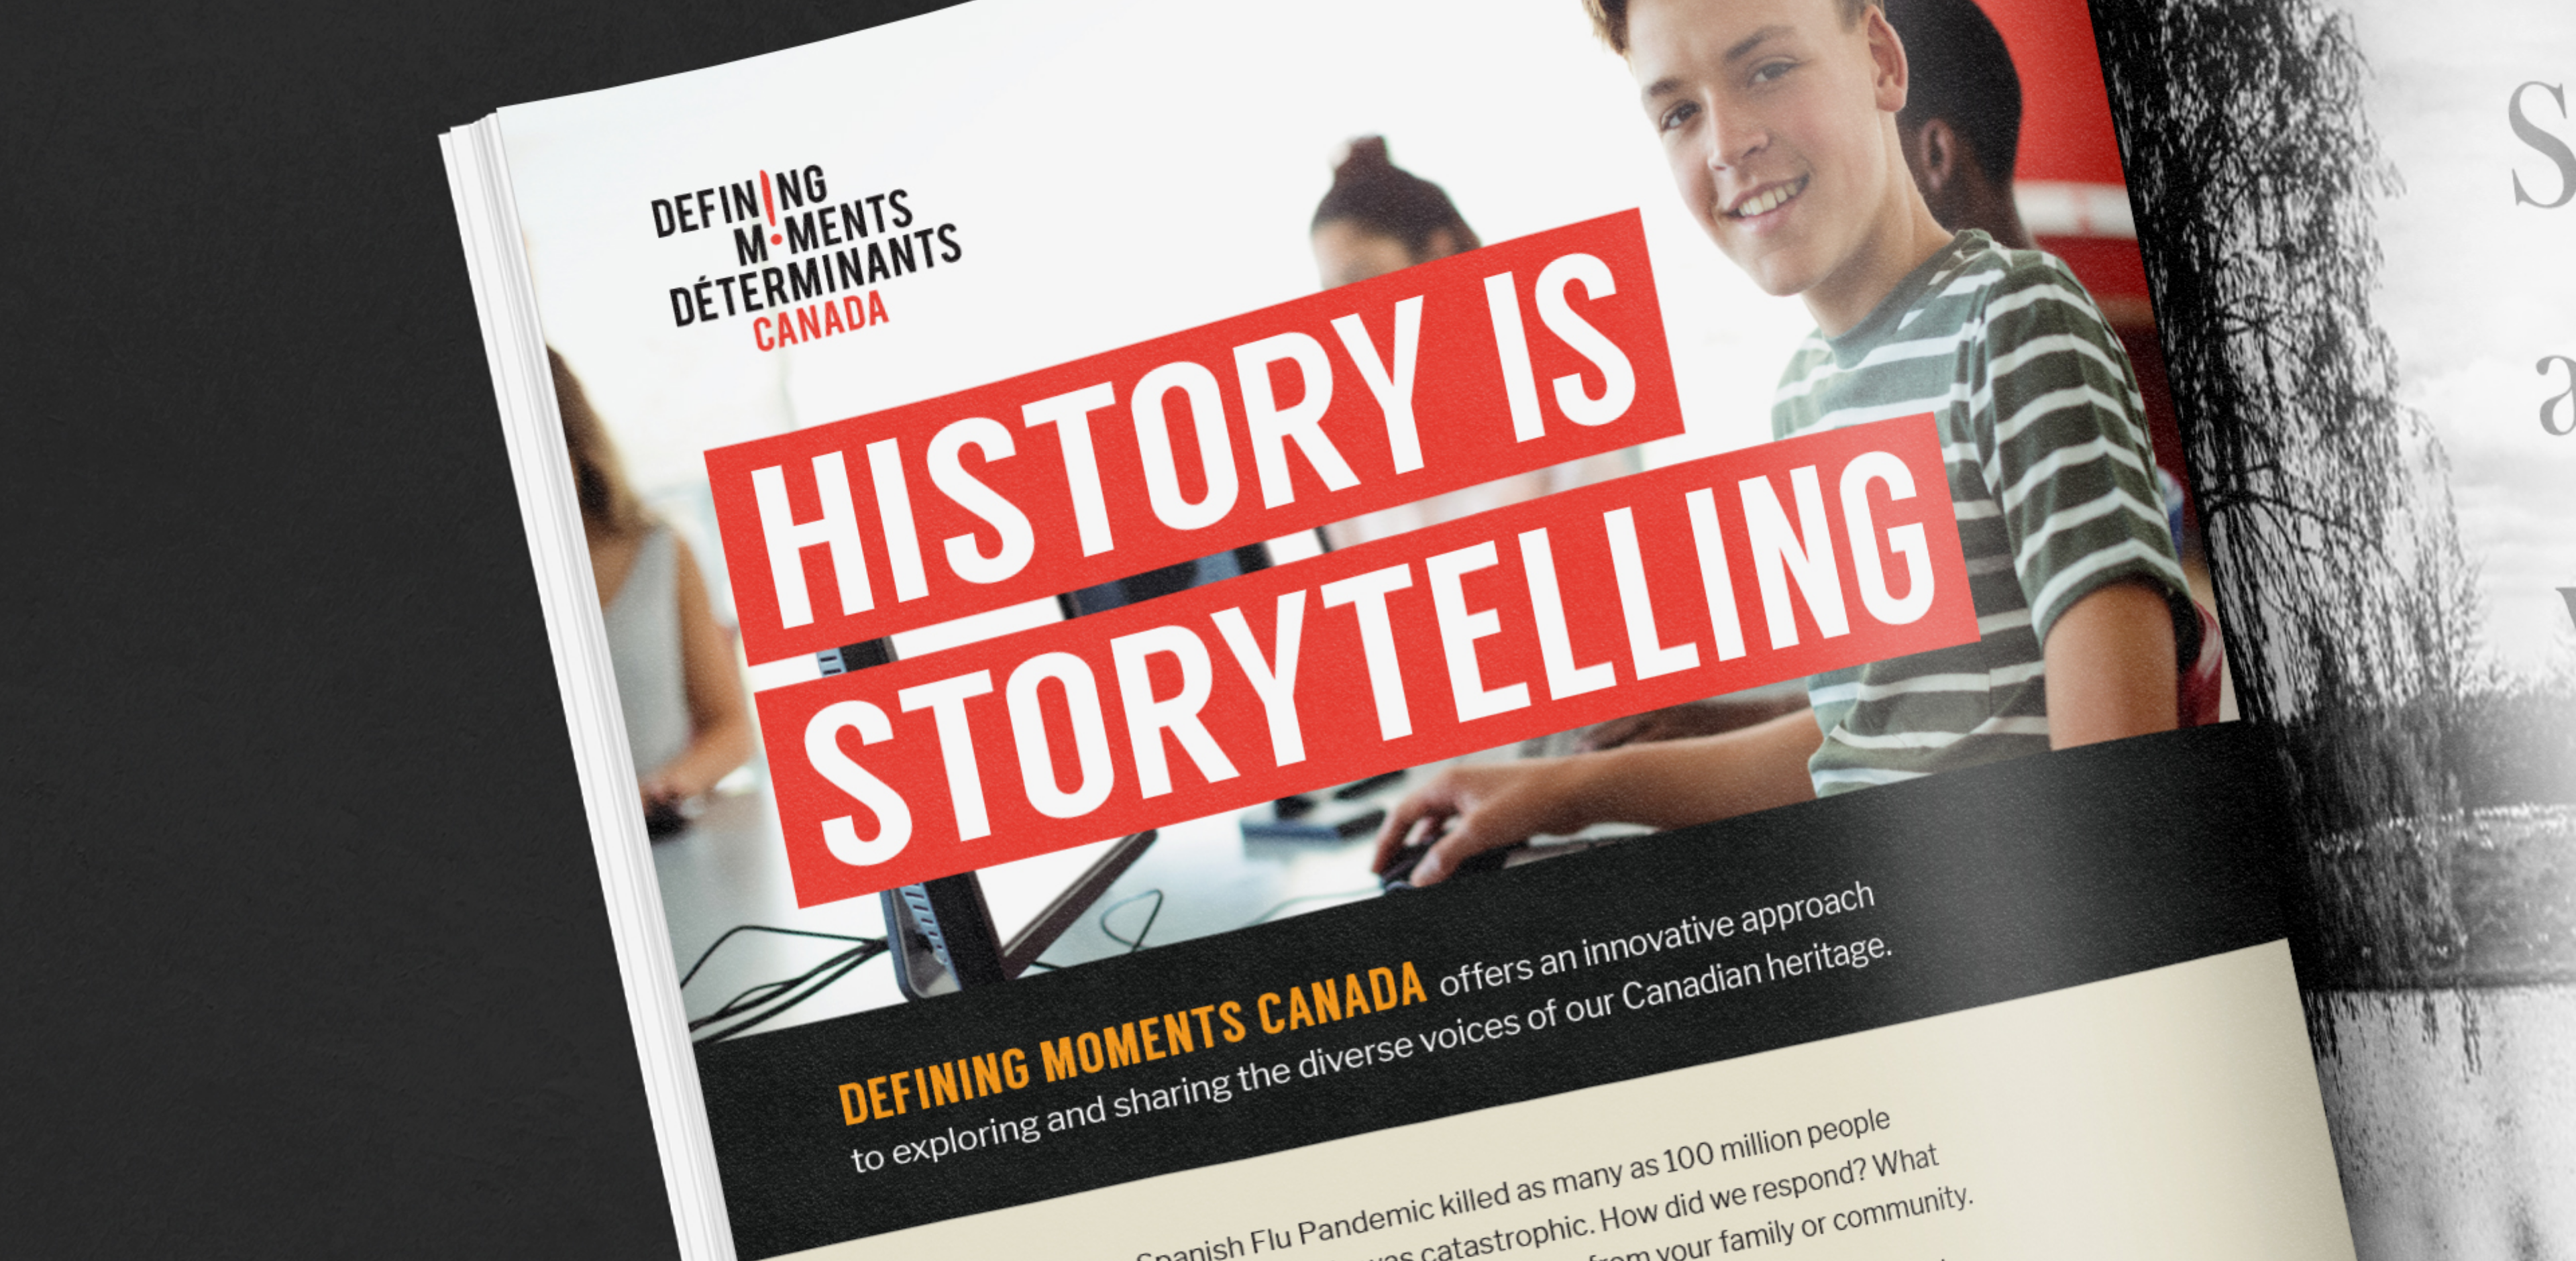 Open magazine showing design of Defining Moments Canada's ad